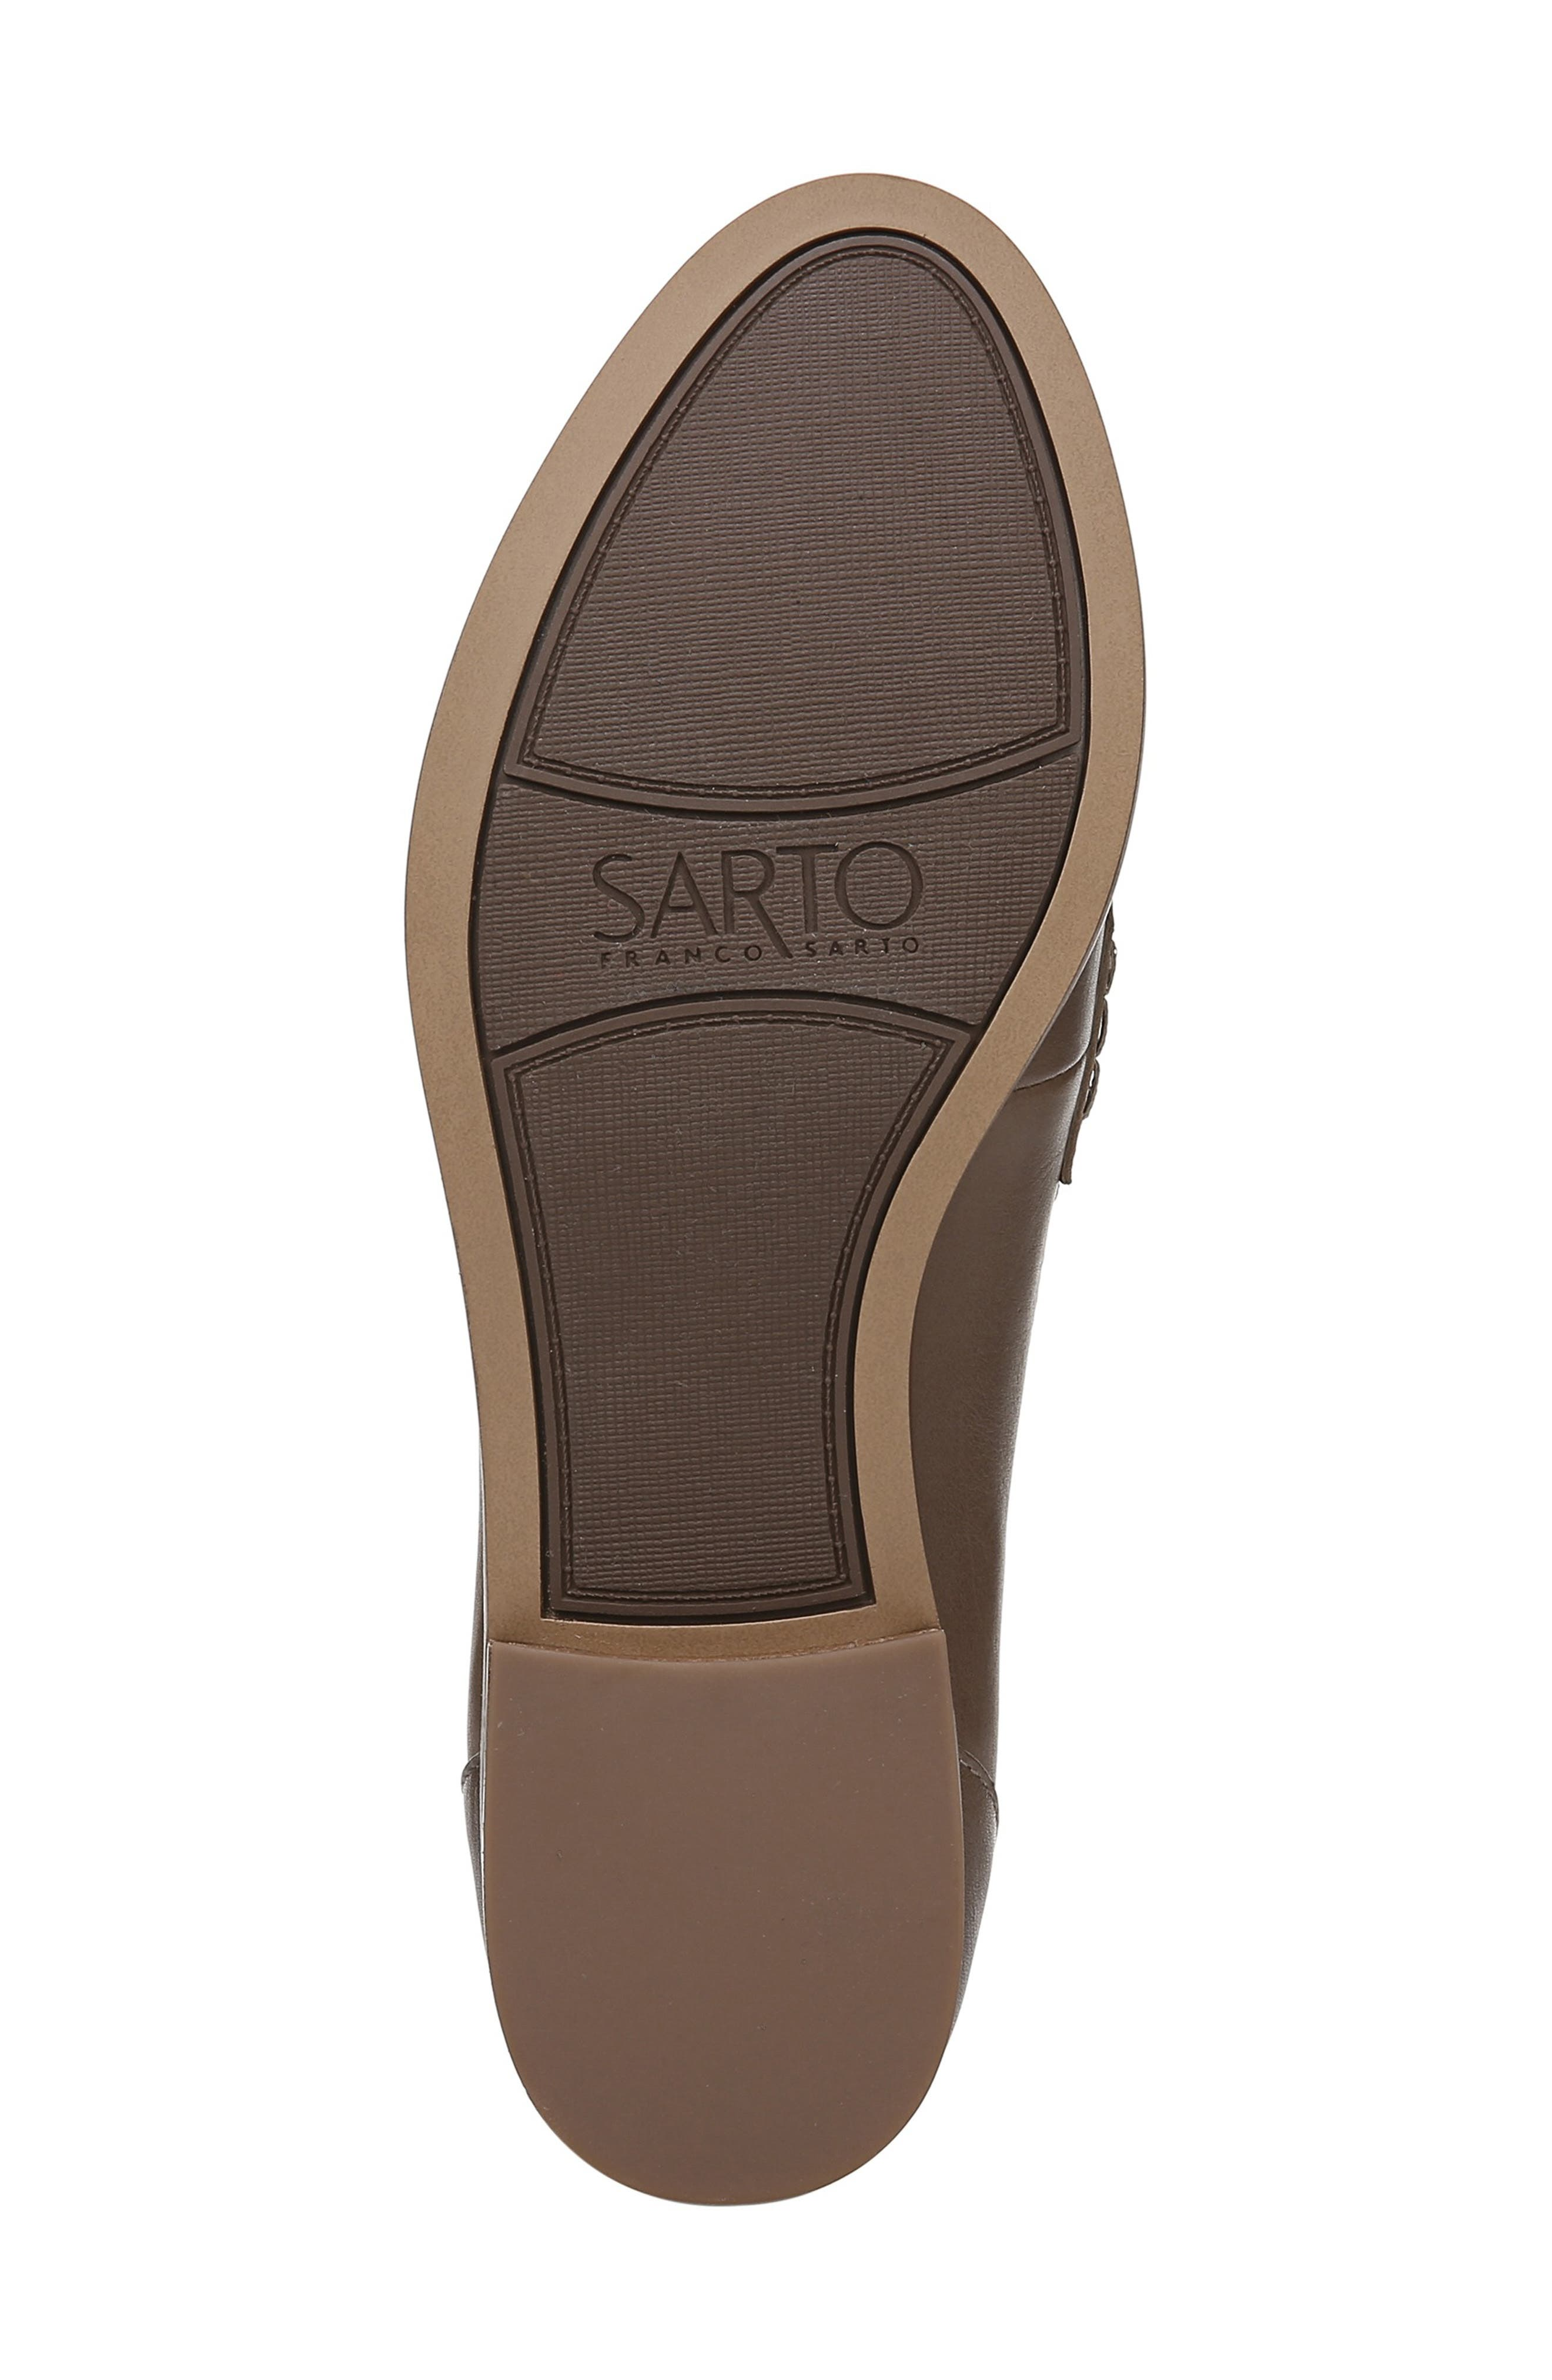 SARTO BY FRANCO SARTO,                             'Jolette' Penny Loafer,                             Alternate thumbnail 6, color,                             DARK PUTTY LEATHER